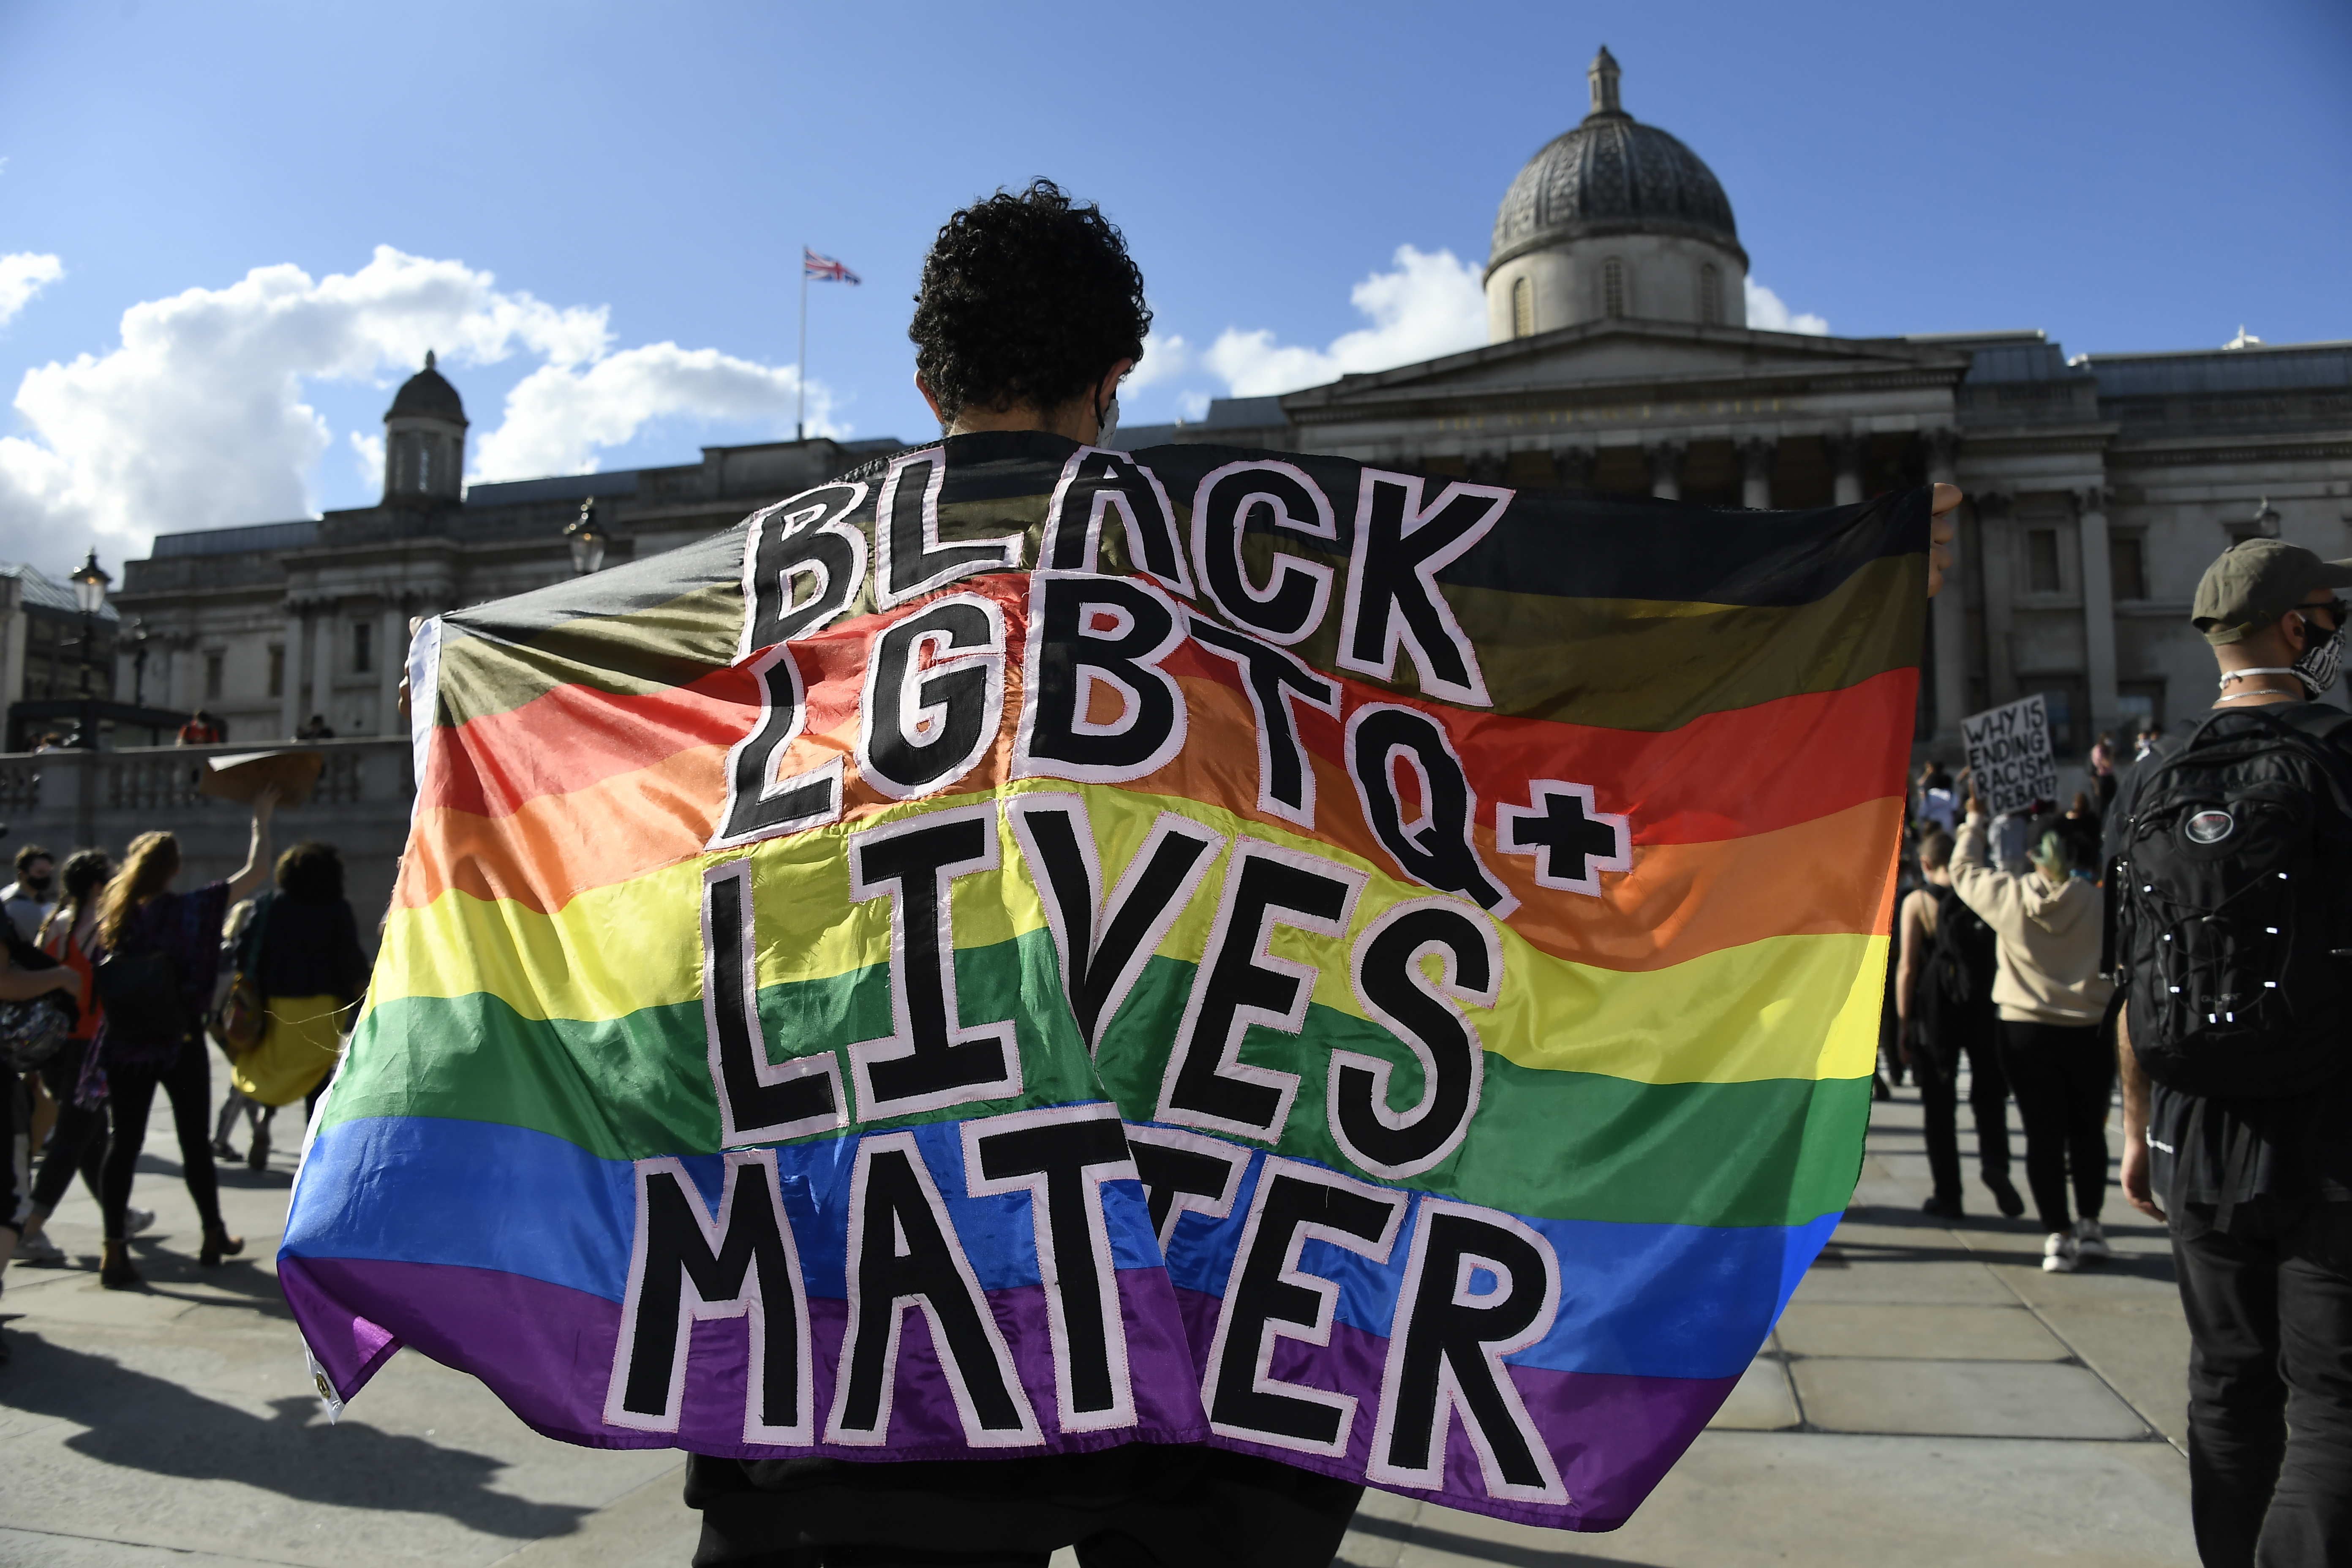 People participate in a rally at Trafalgar Square in central London, organized by Black Lives Matter, in the wake of the killing of George Floyd by police officers in Minneapolis.